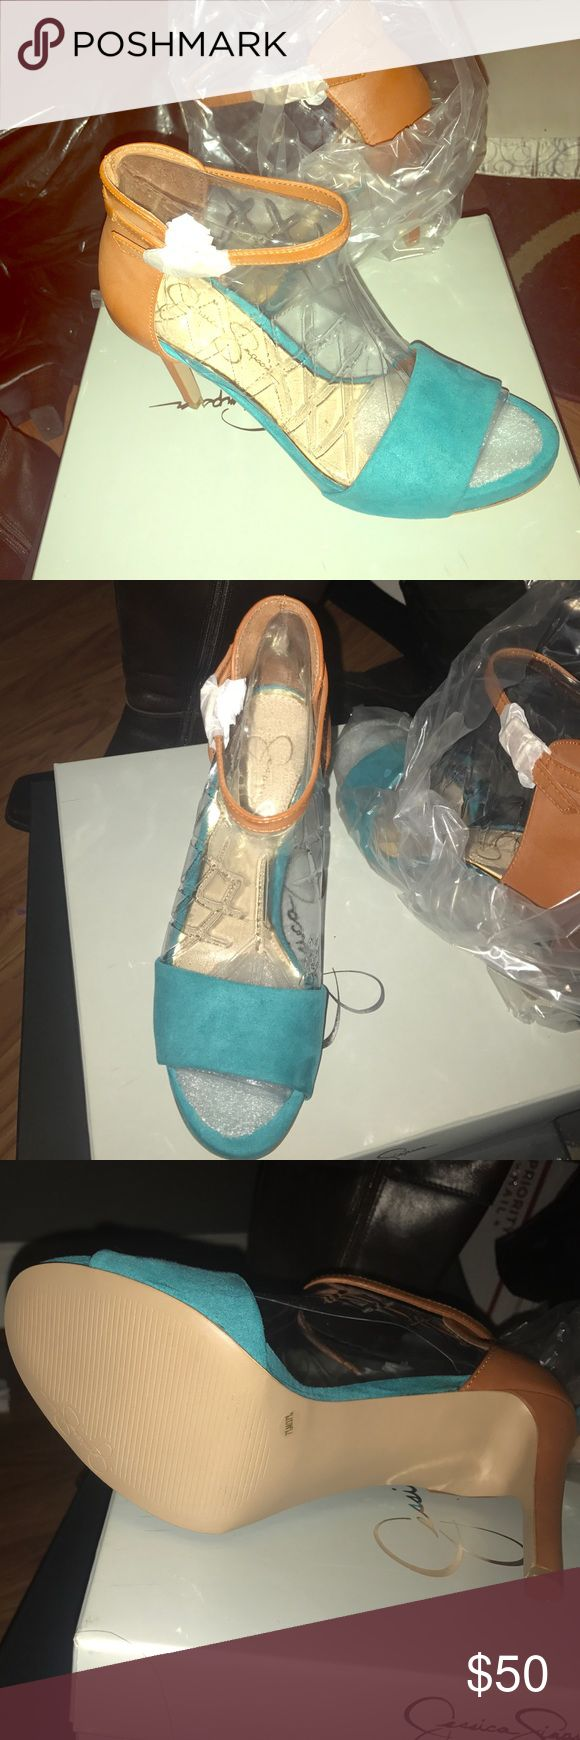 """New in box Jessica Simpson microsuede sandals NWT Jessica Simpson 4"""" microsuede sandals.  Color aqua and beige, brand new. Jessica Simpson Shoes Heels"""